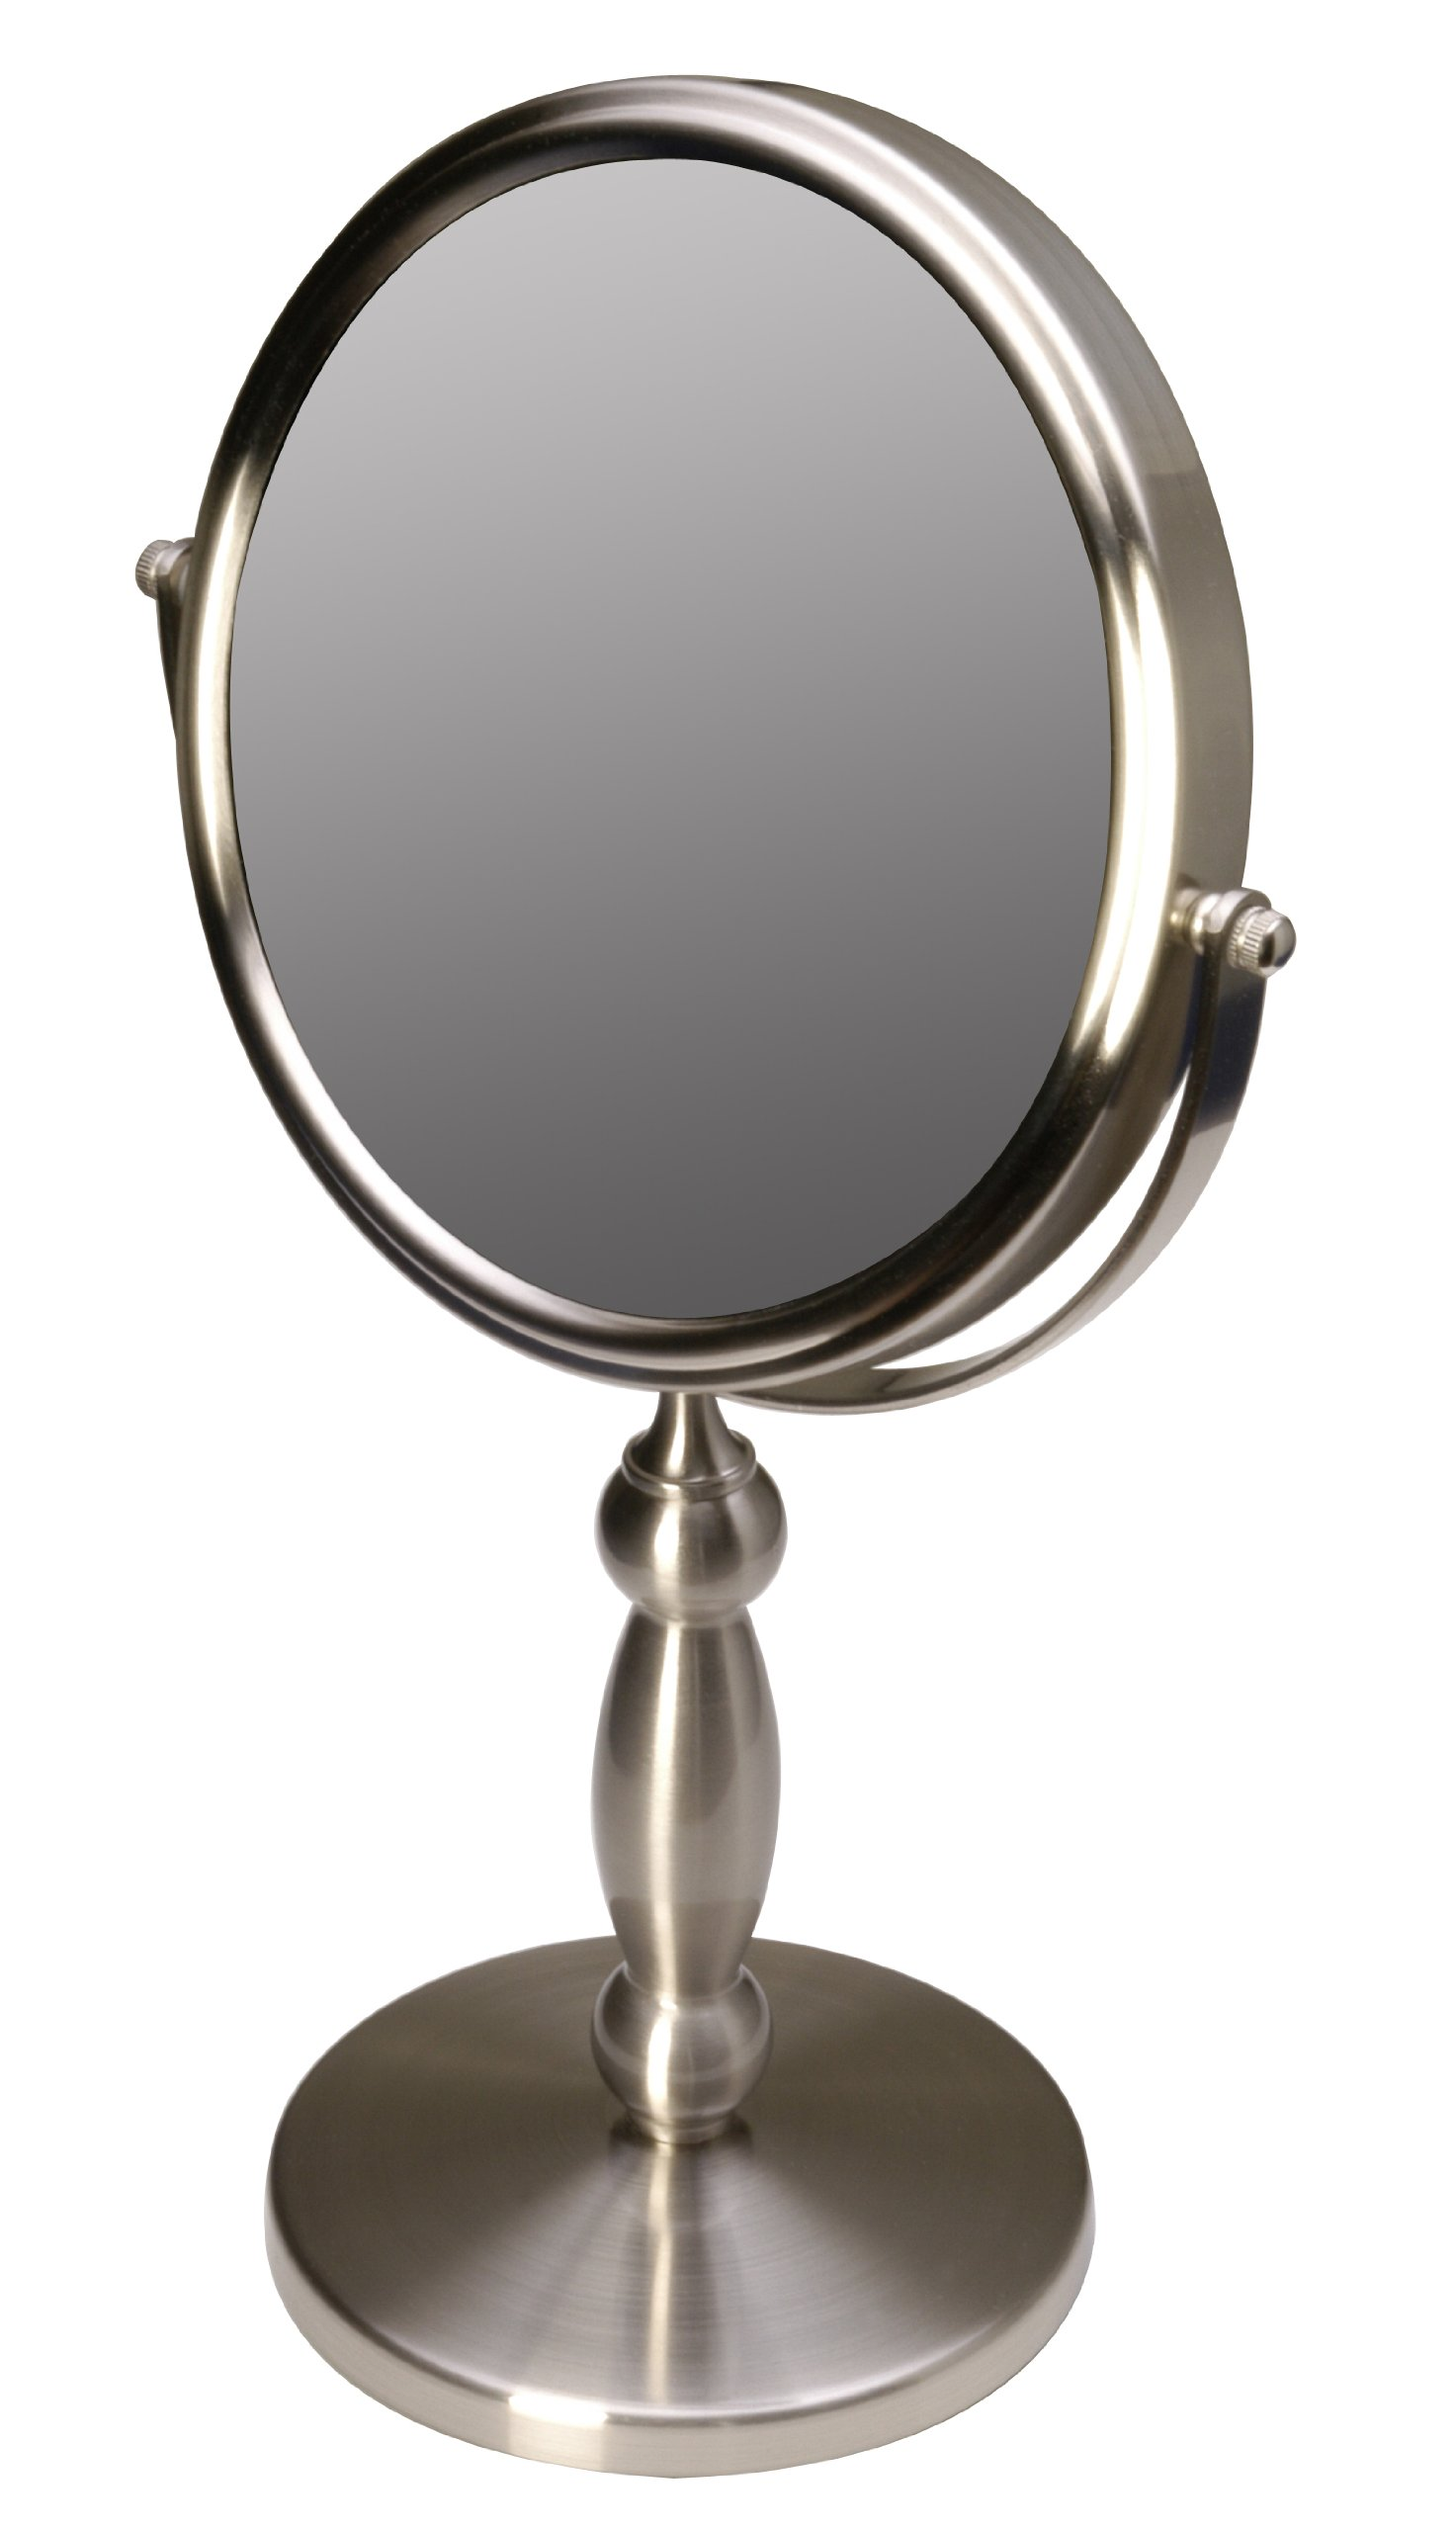 Floxite Fl-15v 15 Extra Strong 15x/1x Supervision Vanity Mirror, Brushed Nickel by Floxite